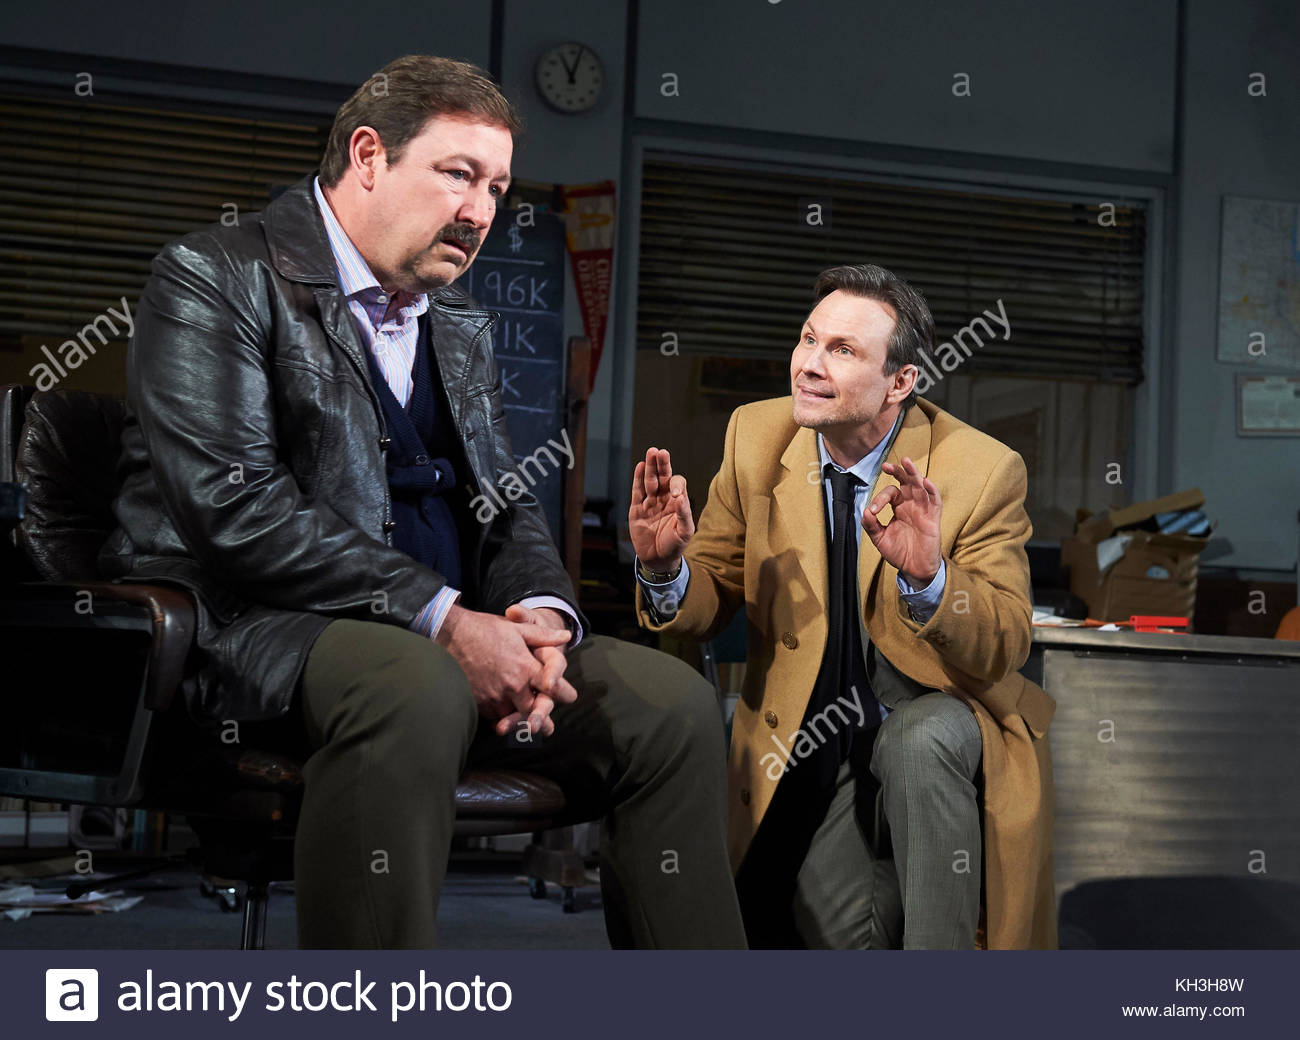 Glengarry Glen Ross by David Mamet, directed by Sam Yates. With Oliver Ryan as Baylen, Christian Slater as Ricky - Stock Image